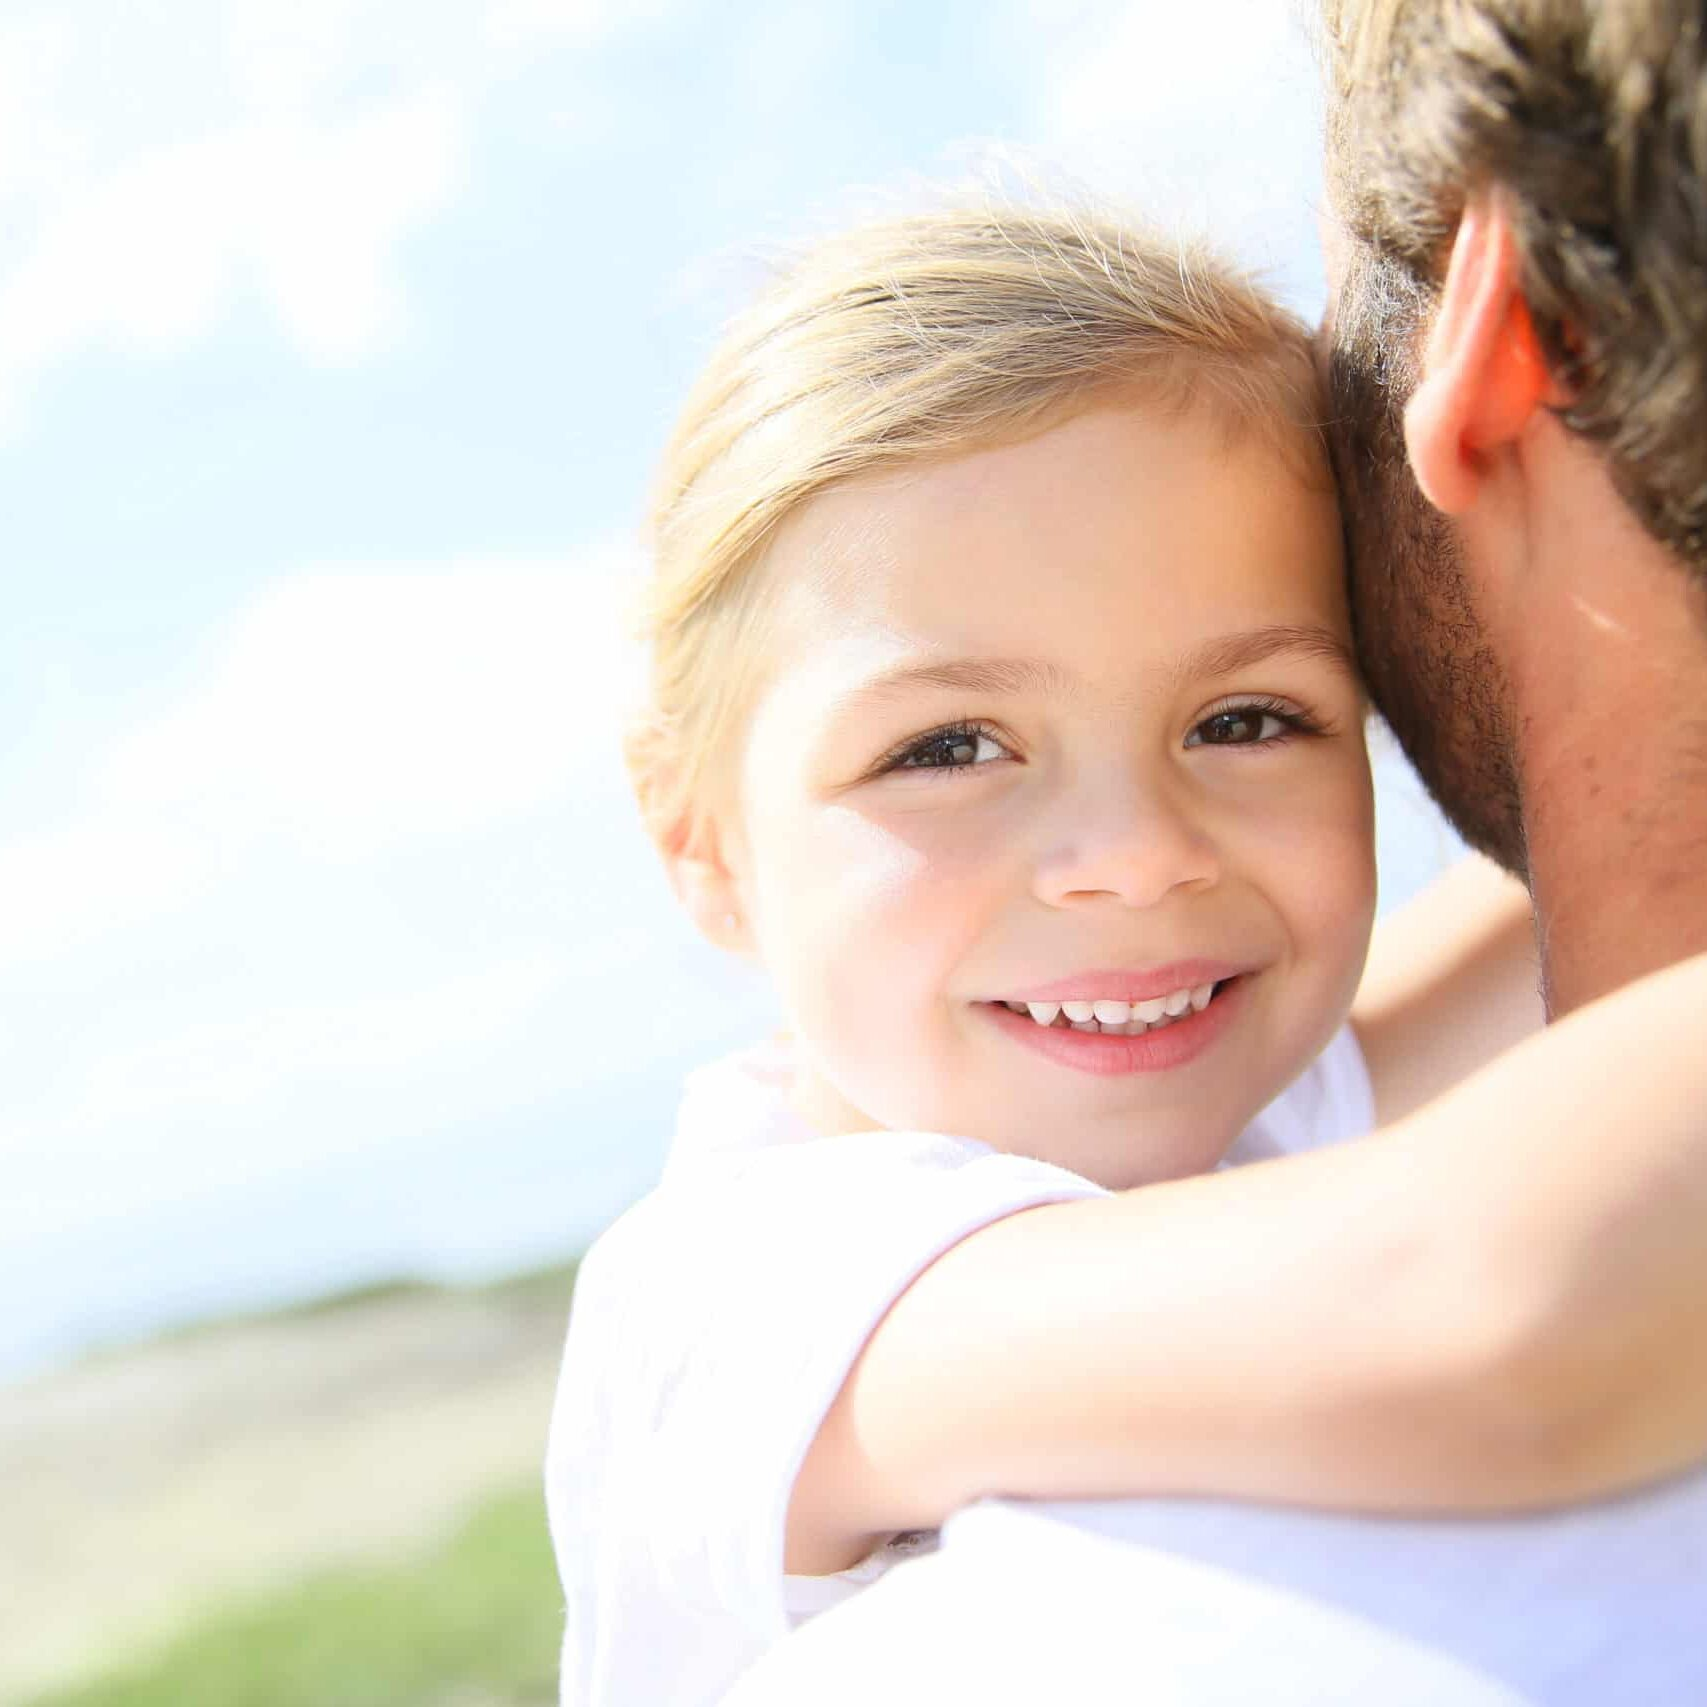 Portrait of cute little girl held in father's arms